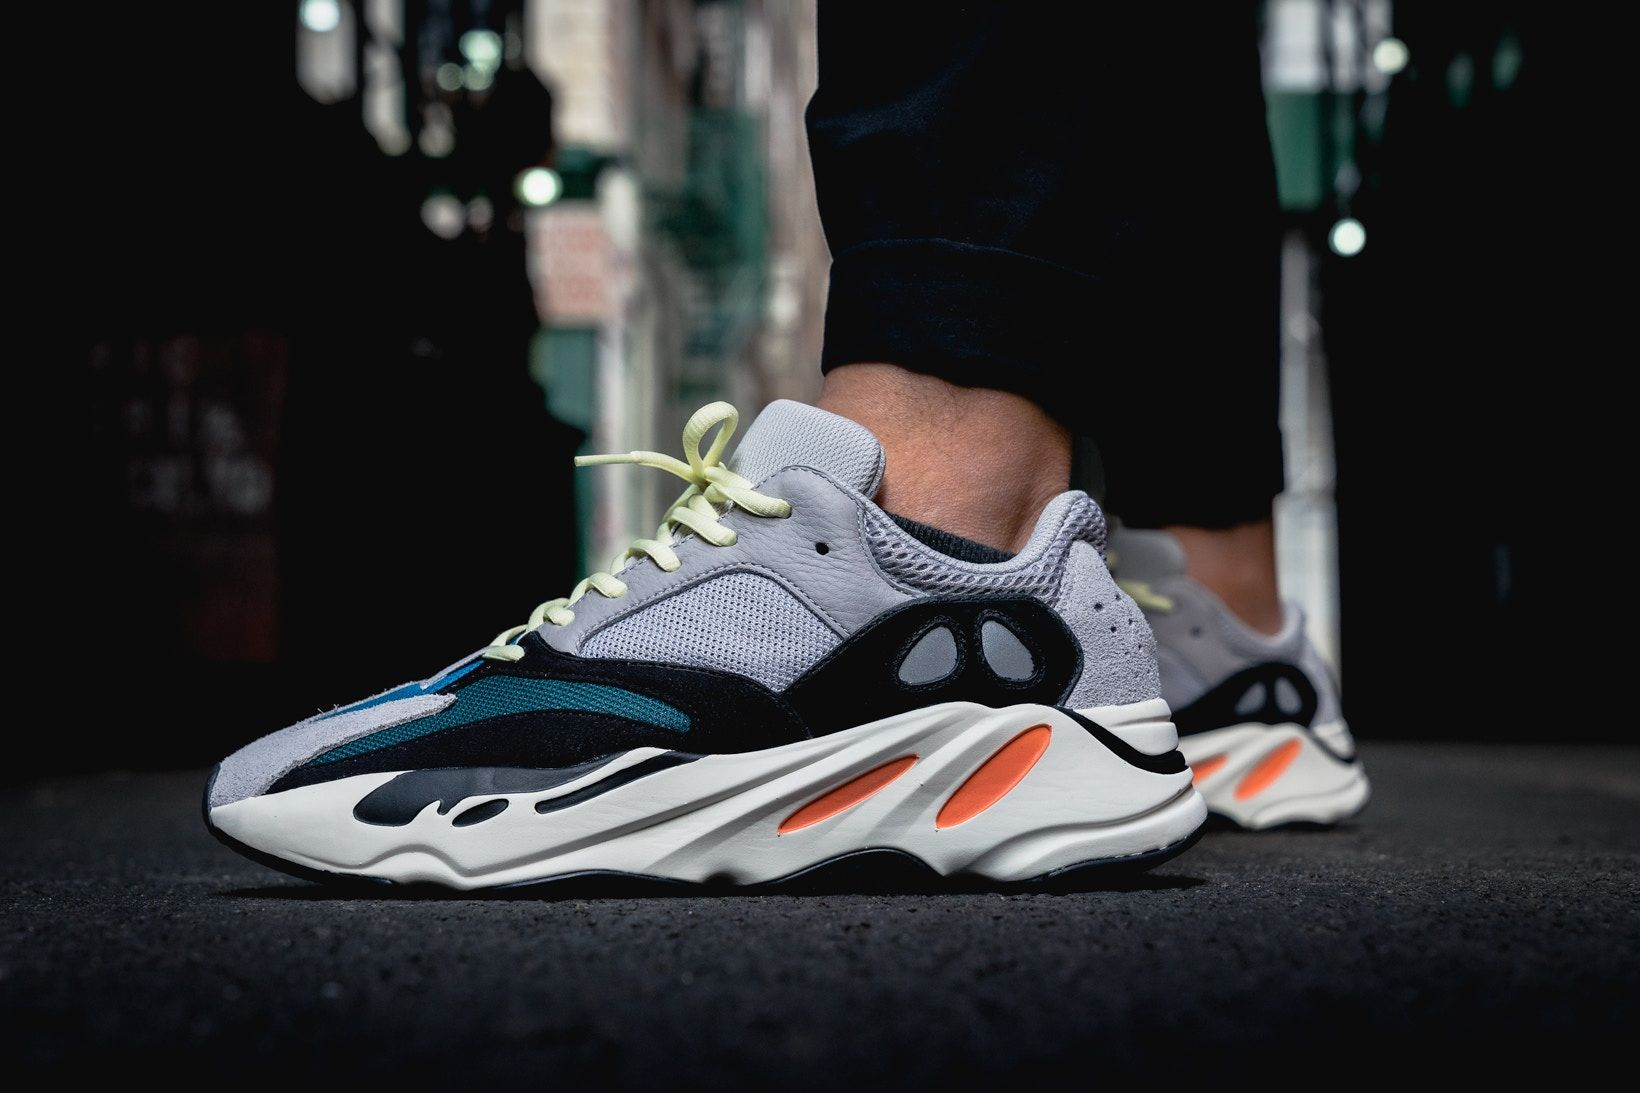 meet af6dd 70ae1 adidas YEEZY BOOST 700 On Feet Closer Look Wave Runner Kanye West Kim  Kardashian footwear